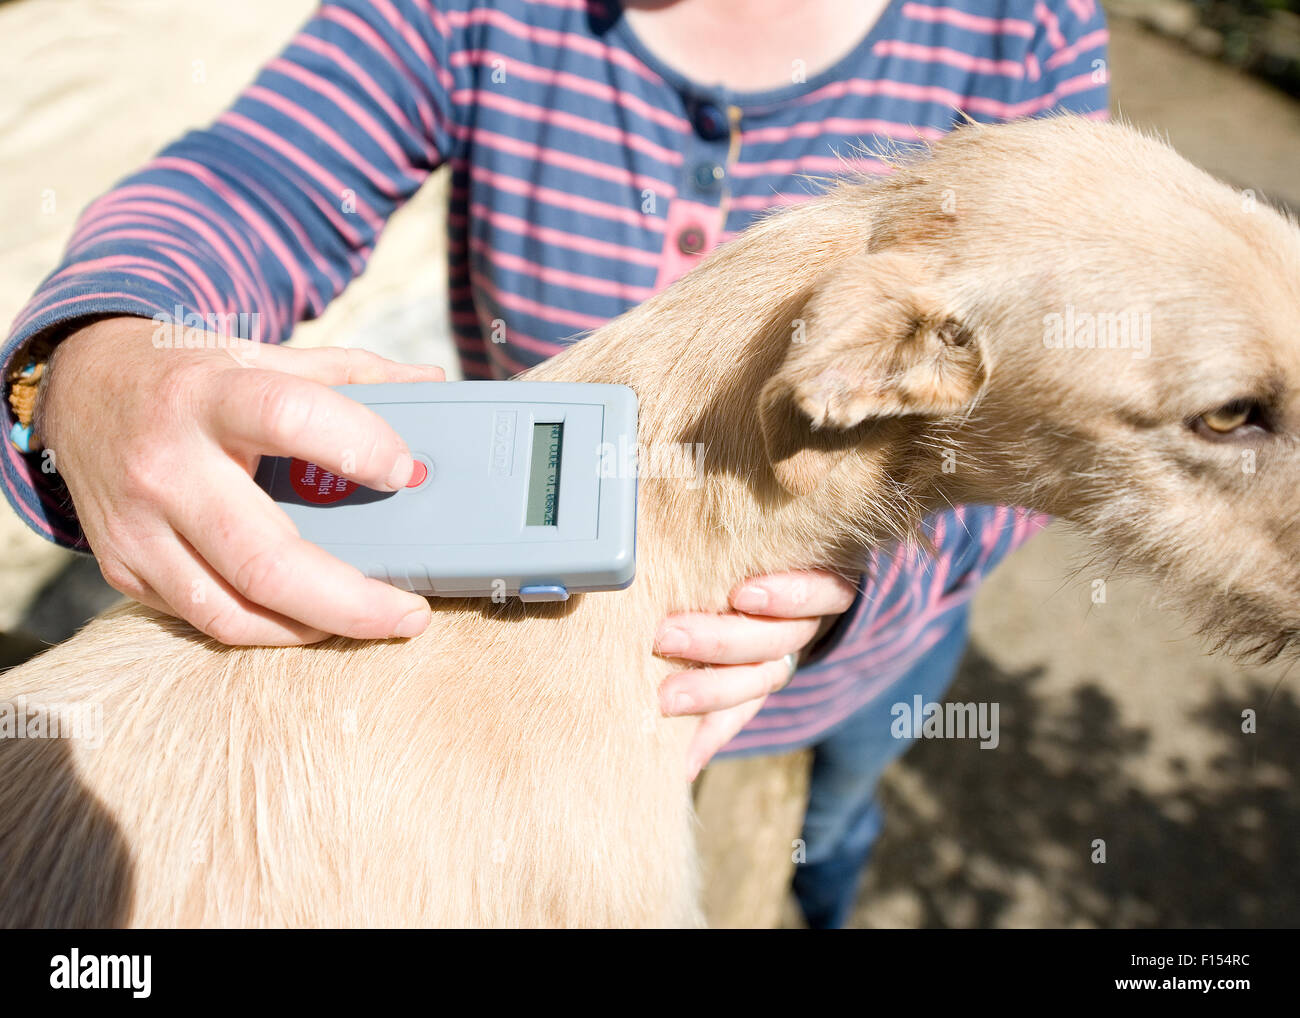 scanning your dog for a microchip - Stock Image